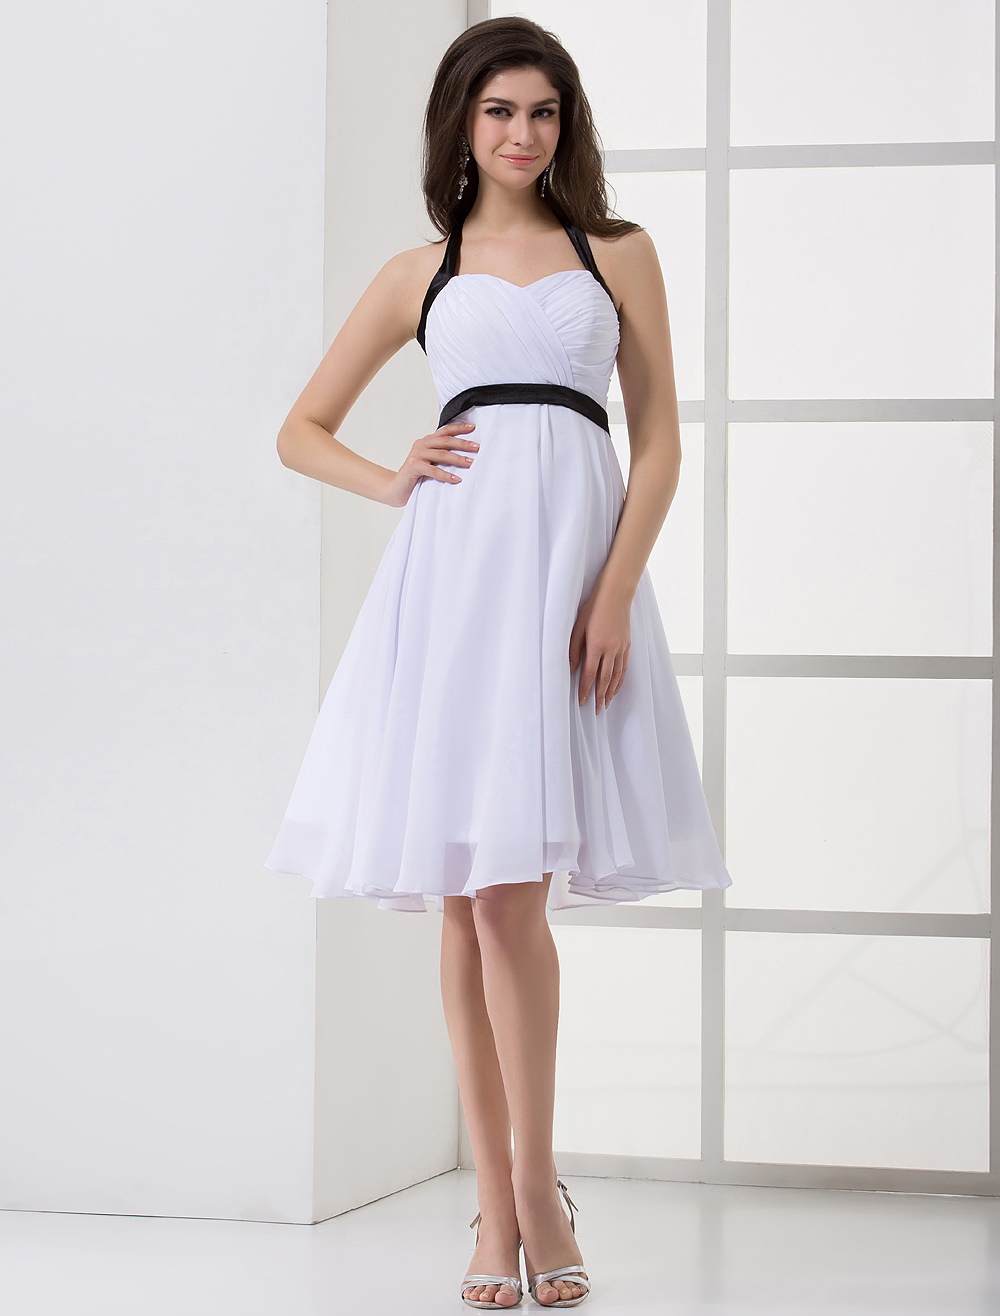 White Sash Straps Backless Bow Satin Chiffon Bridesmaid Dress